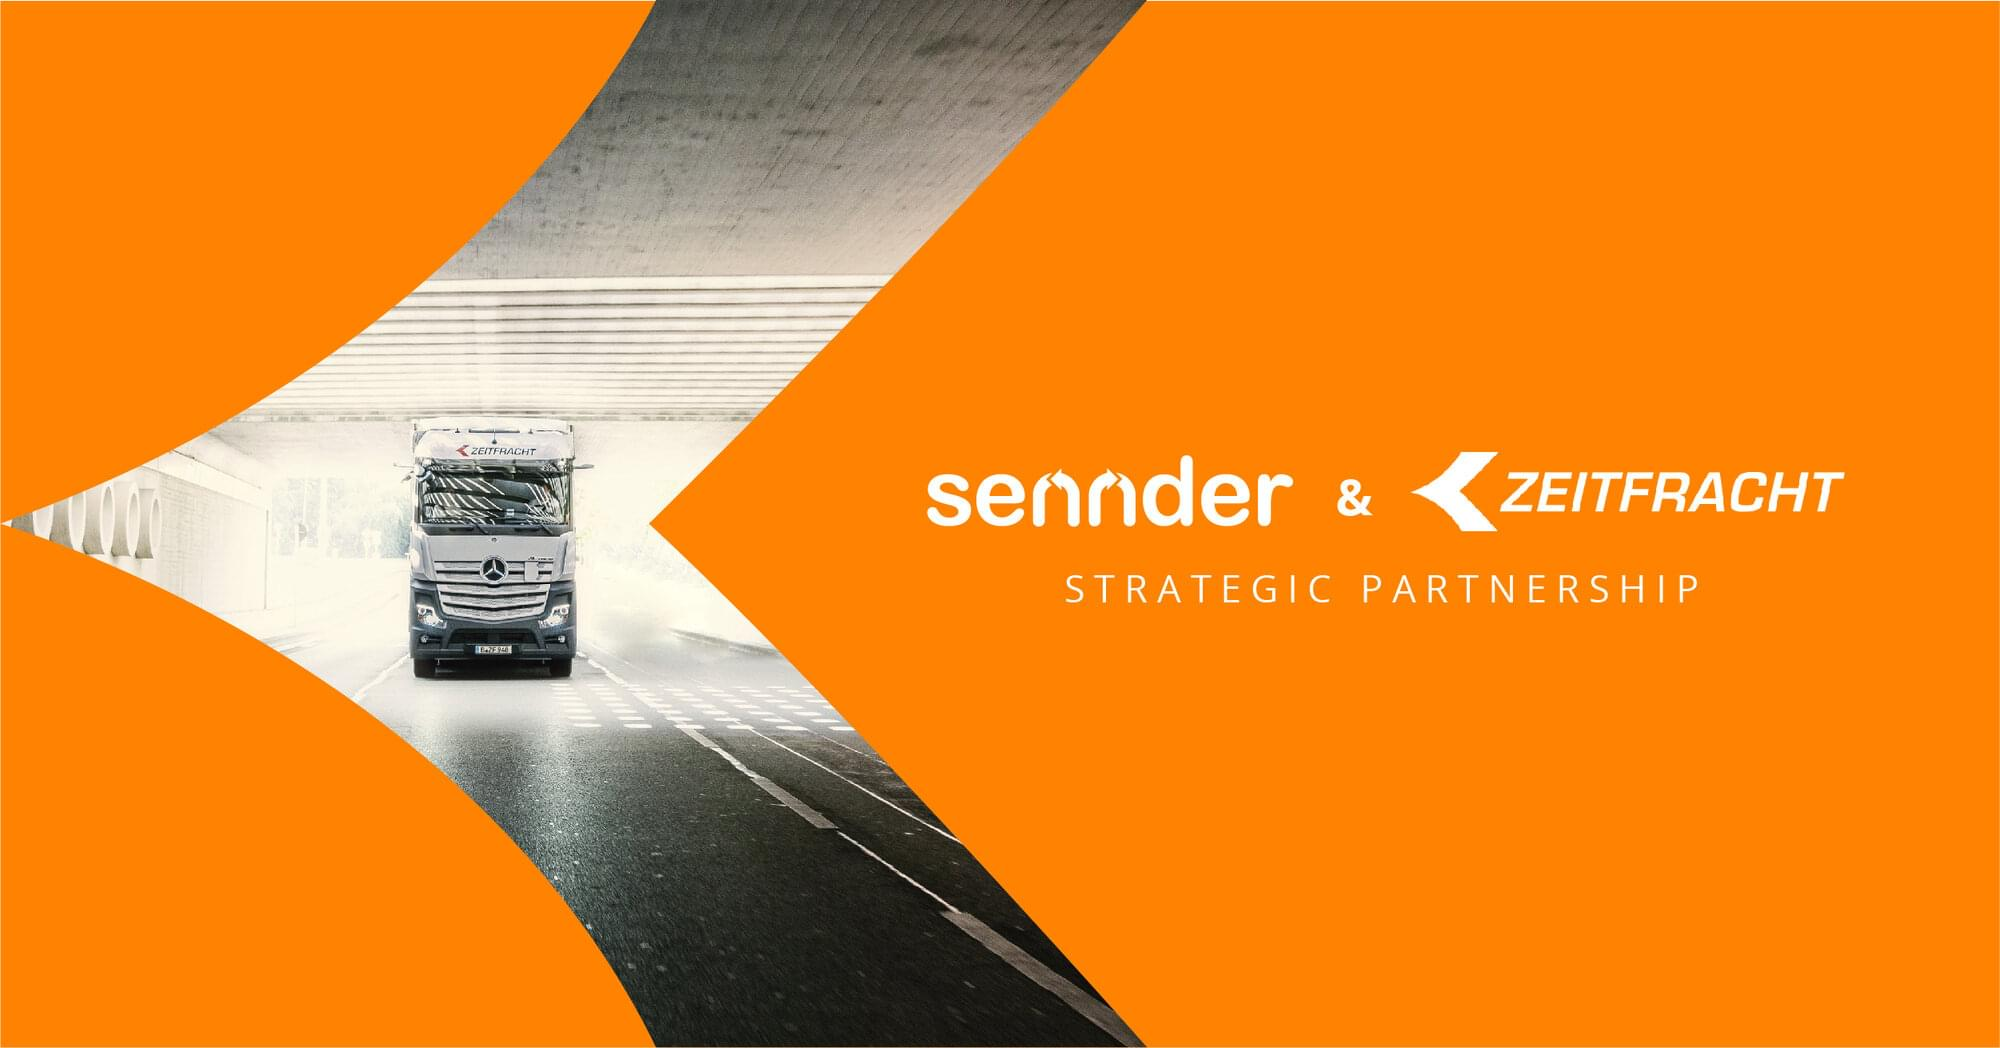 sennder licenses SaaS platform to Zeitfracht, as part of a new strategic partnership